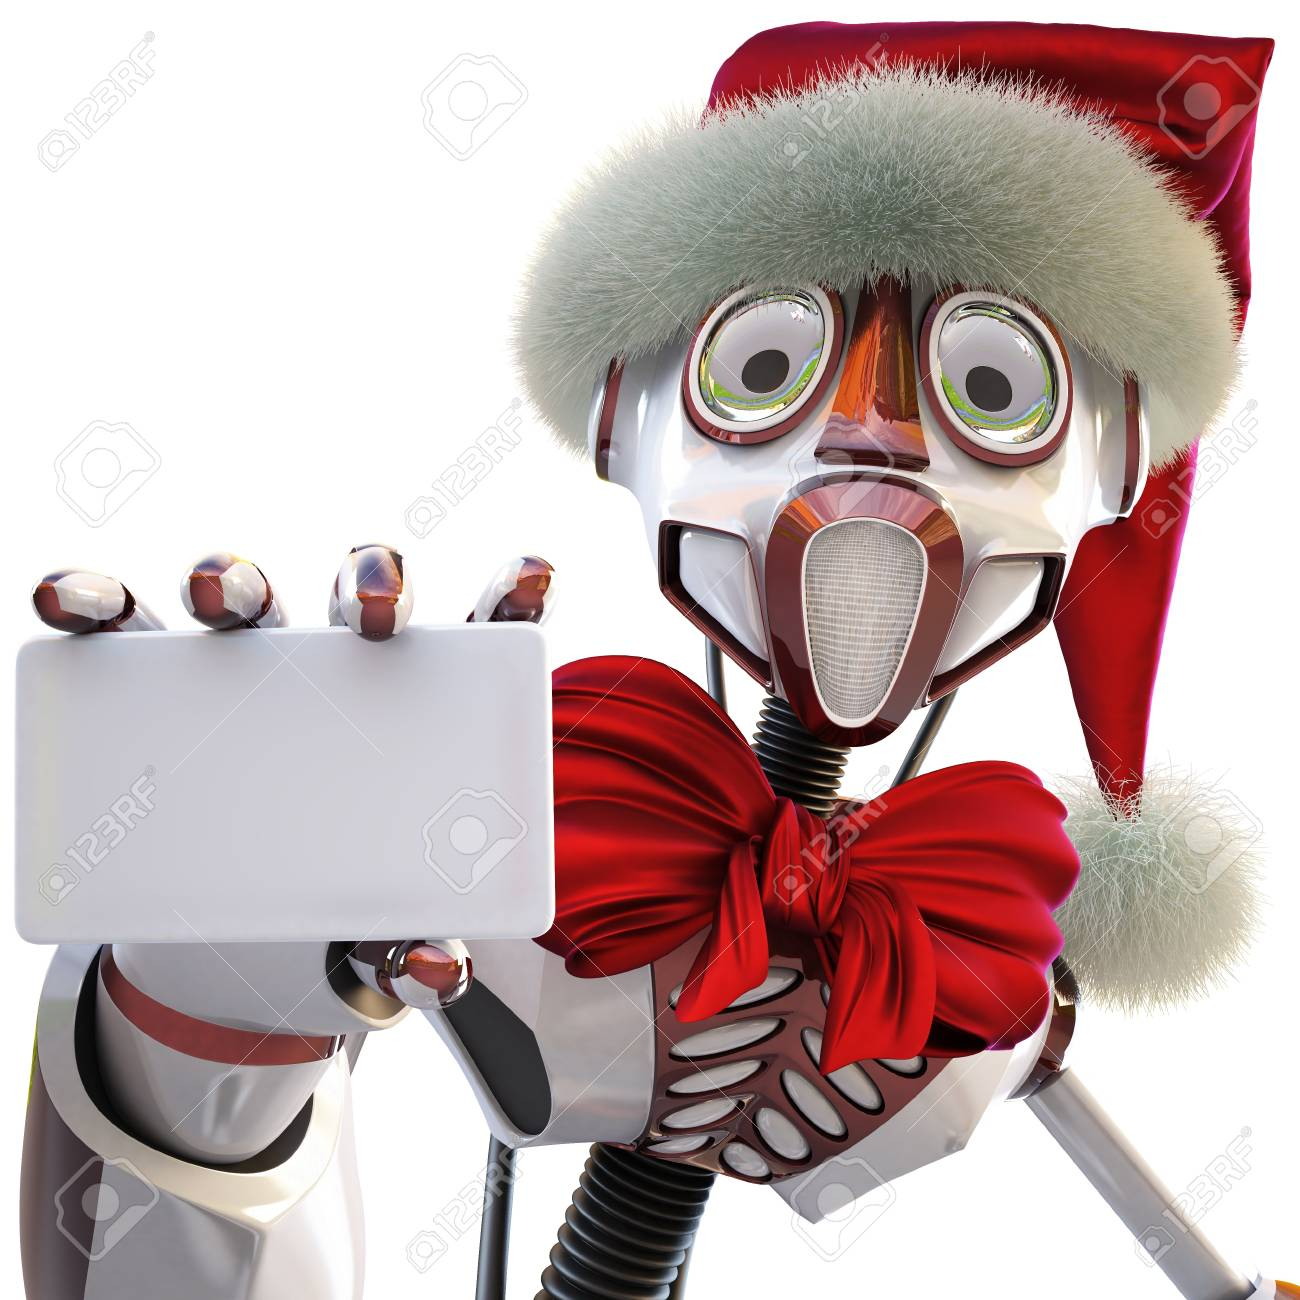 robot in the hat of Santa Claus handing a blank business card. isolated on white. Stock Photo - 8316925